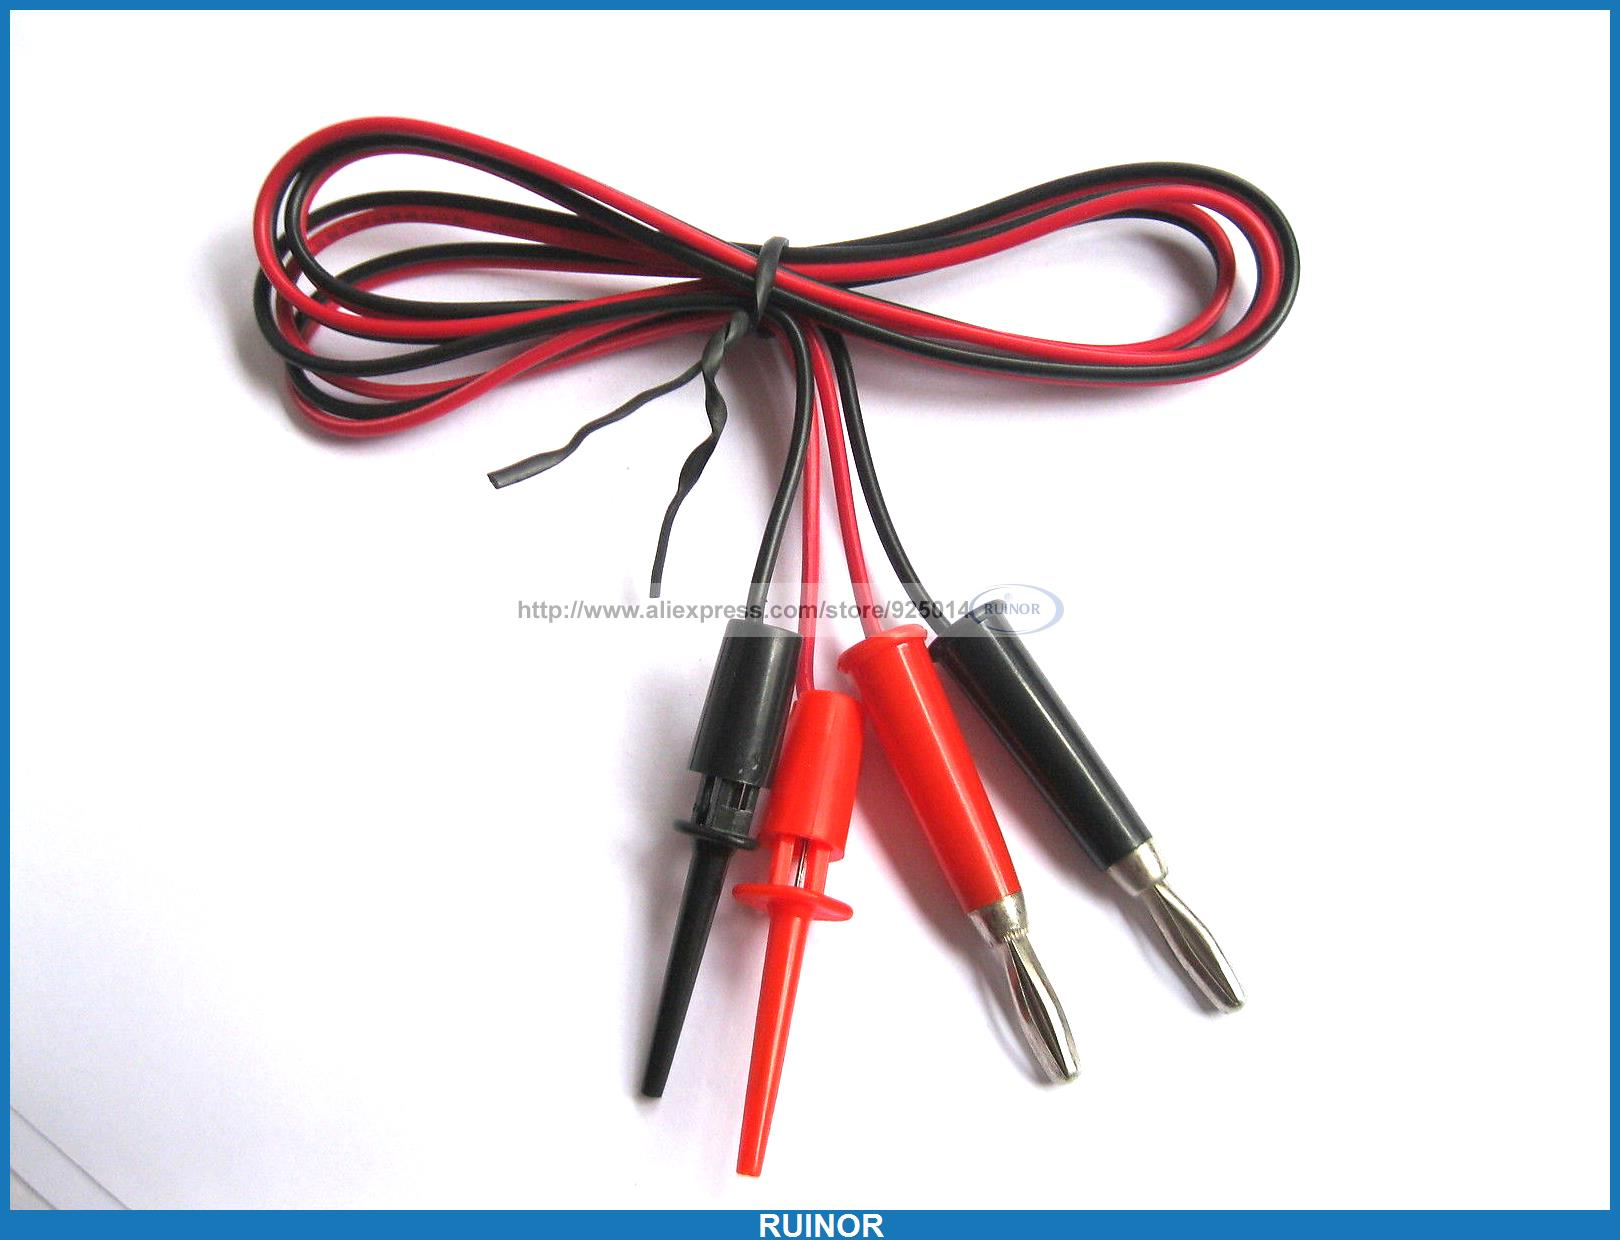 10x 4MM Right Angle Banana Plug for Test Probes Adapter Connector Red//Black